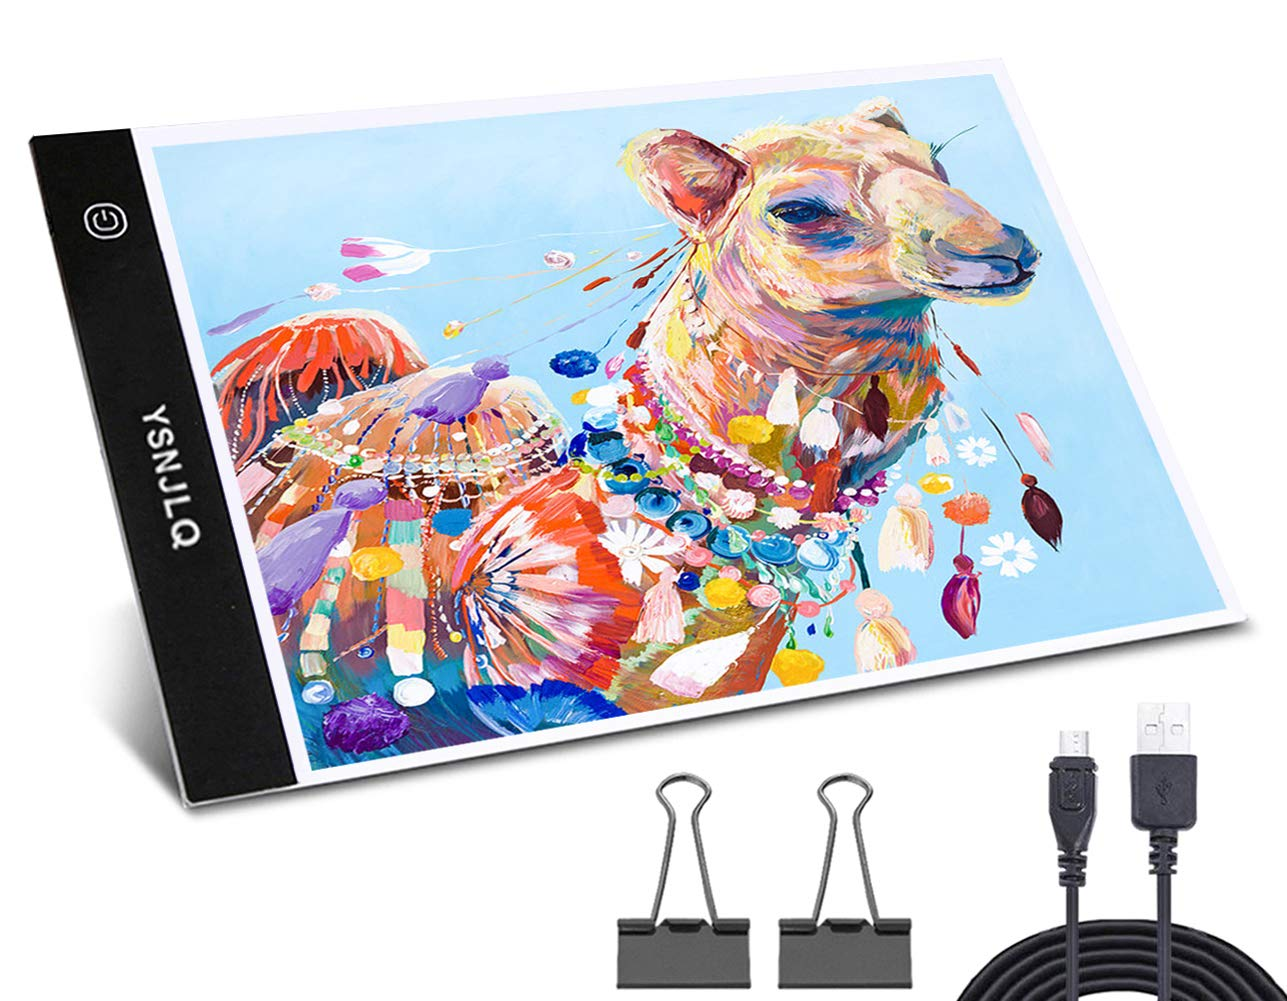 A4 Led Tracing Light Box Tracer Pad Bright Tablet Portable Thin USB Power Board for 5D Diamond Painting Drawing by YSNJLQ